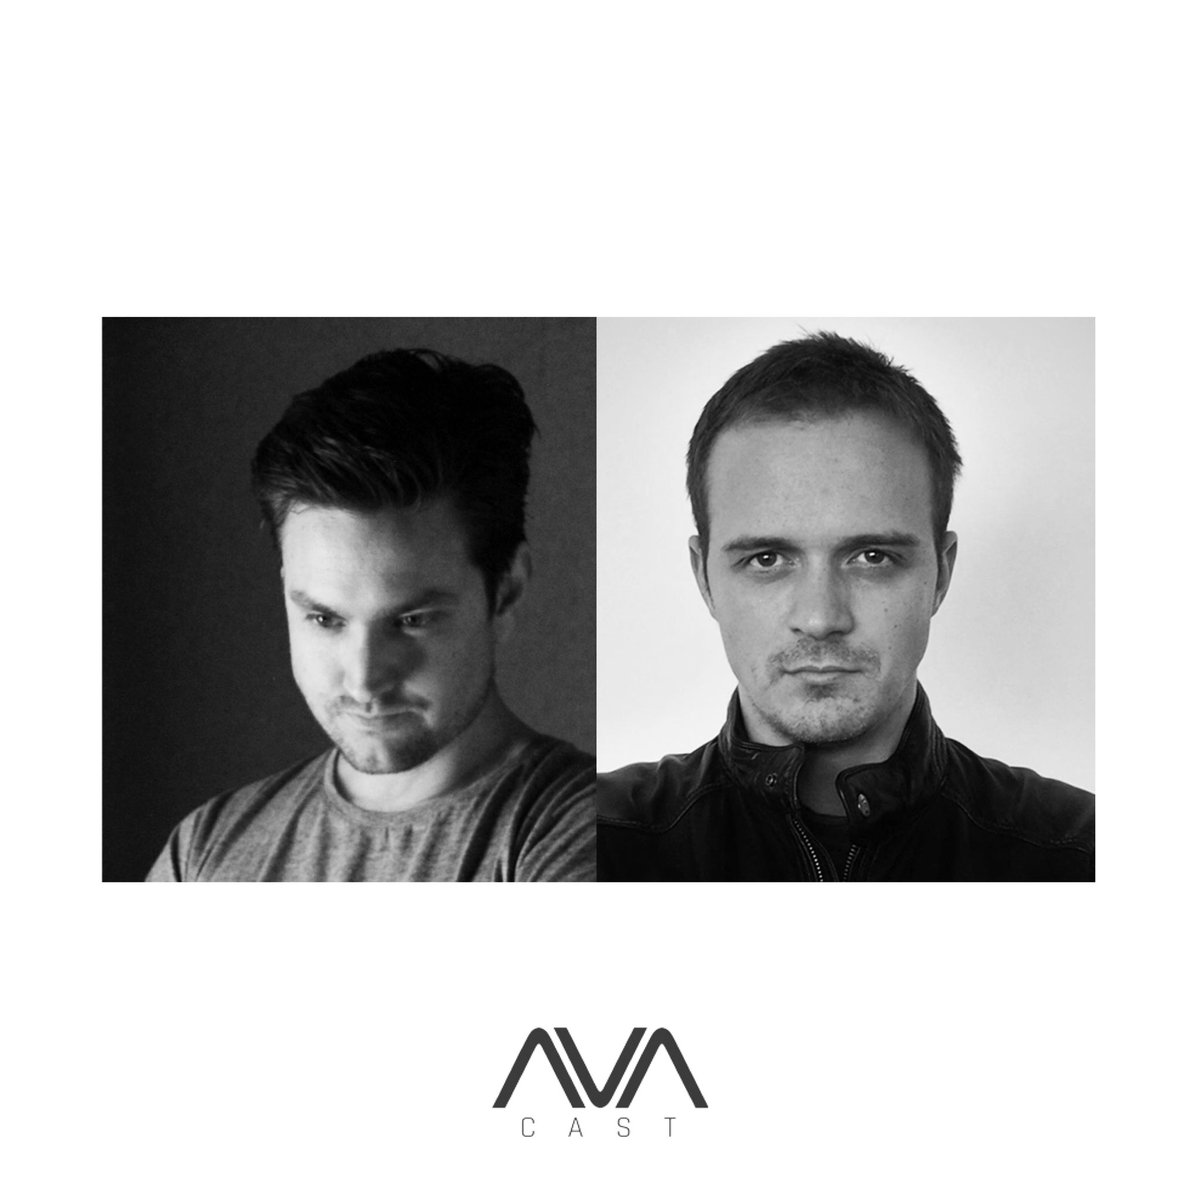 Frank Waanders & Exolight's guest mix for our #AVAcast is now up! 📻🎶 🎧 Listen here ⇨ https://t.co/Nz6a3vpbM4  @frankwaanders @Exolightmusic #AVArecordings #AVAwhite #avafamily #trance #podcast #guestmix #trancefamily https://t.co/vGDrcV5Xcu